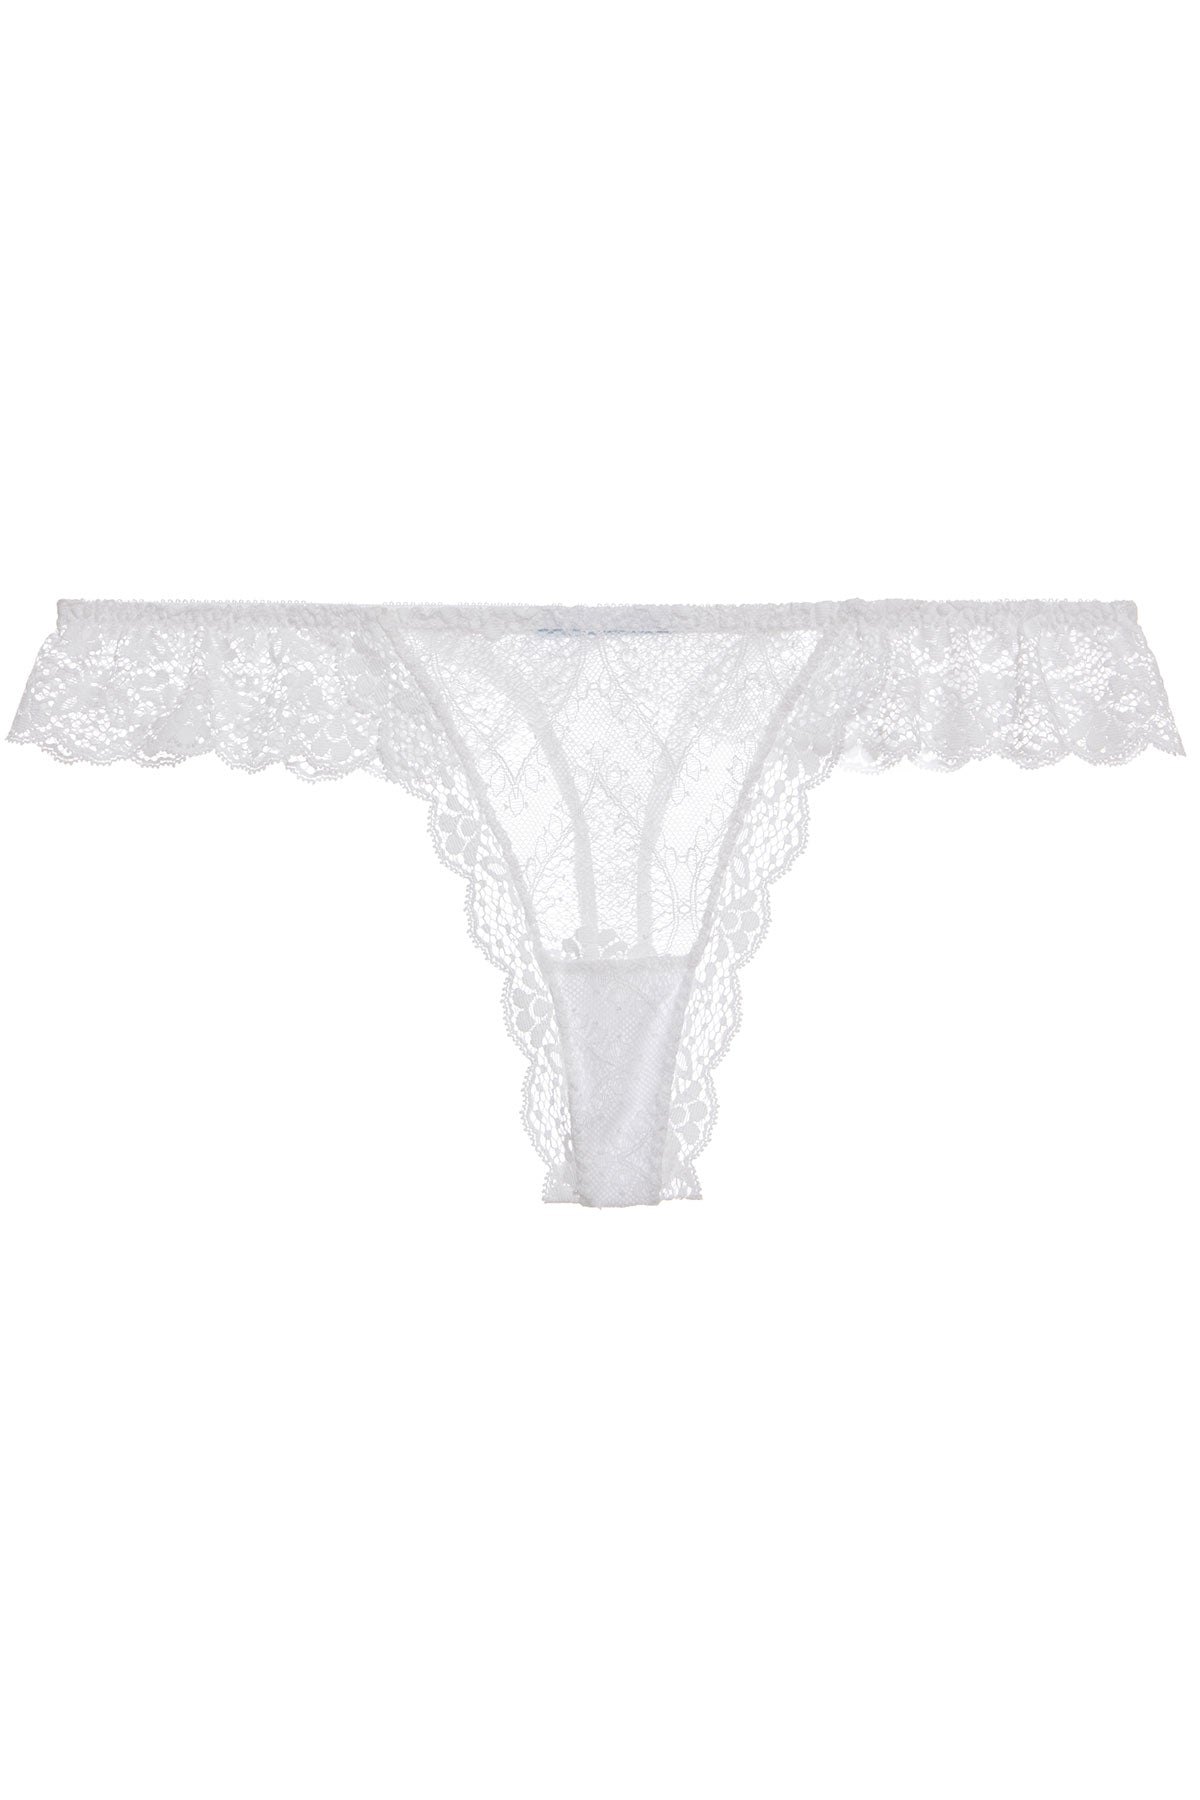 Eberjey Kiss The Bride The Ruffle Thong